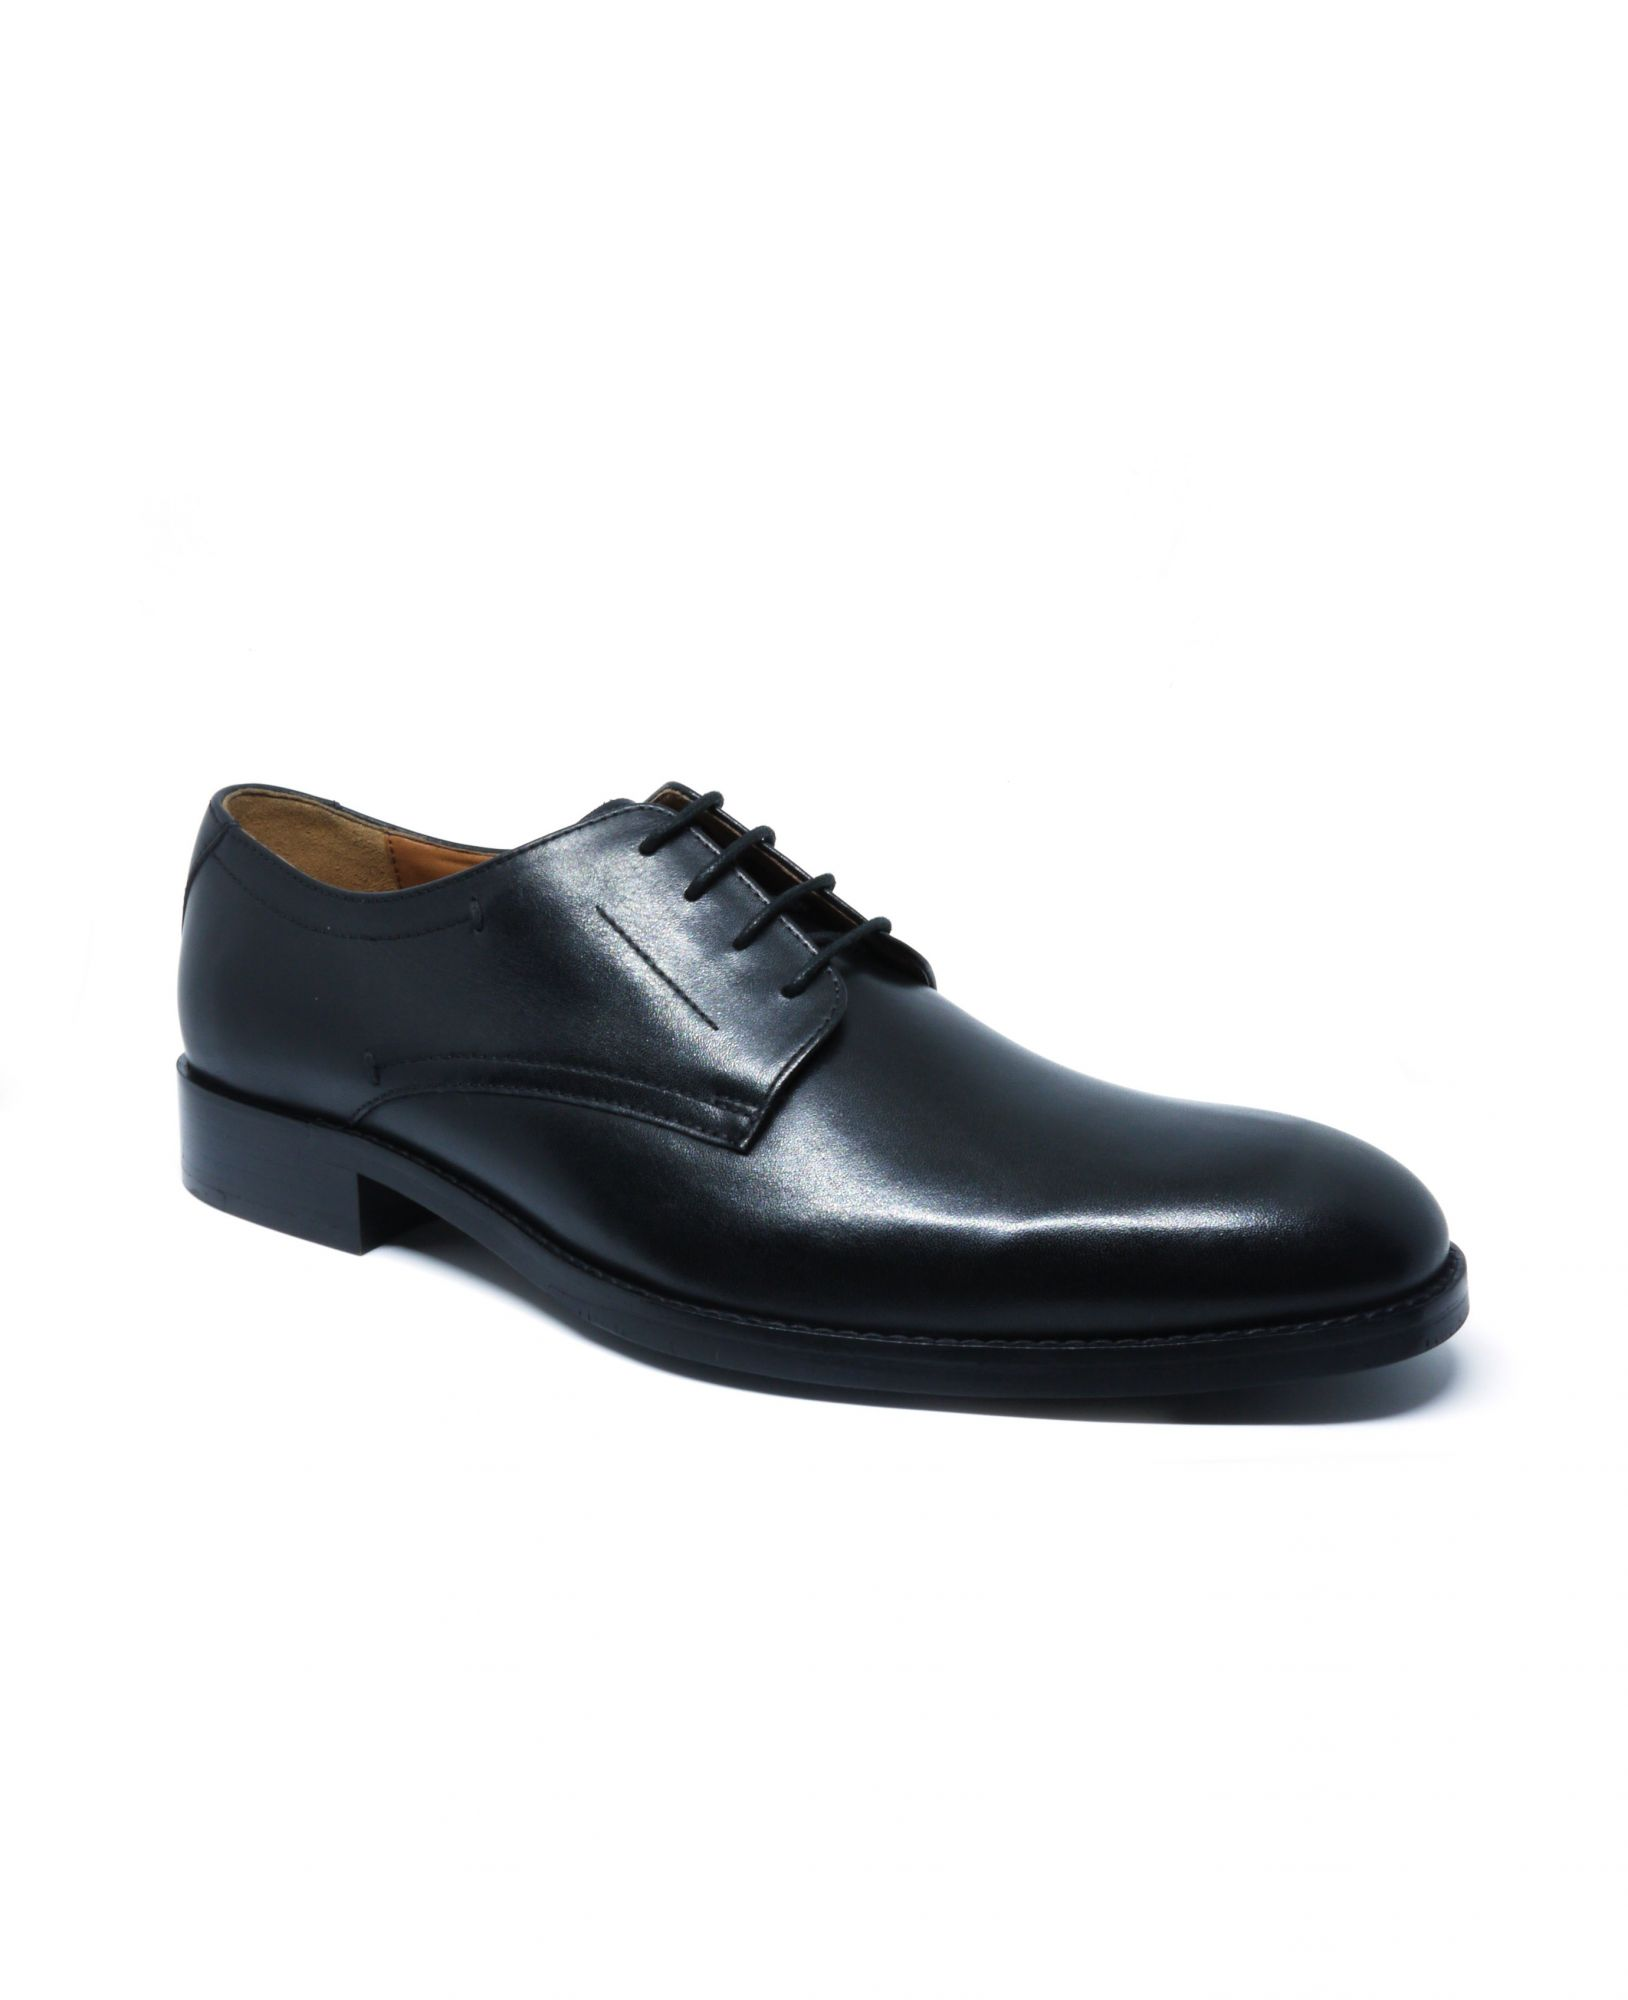 Black Leather Derby Shoes 12